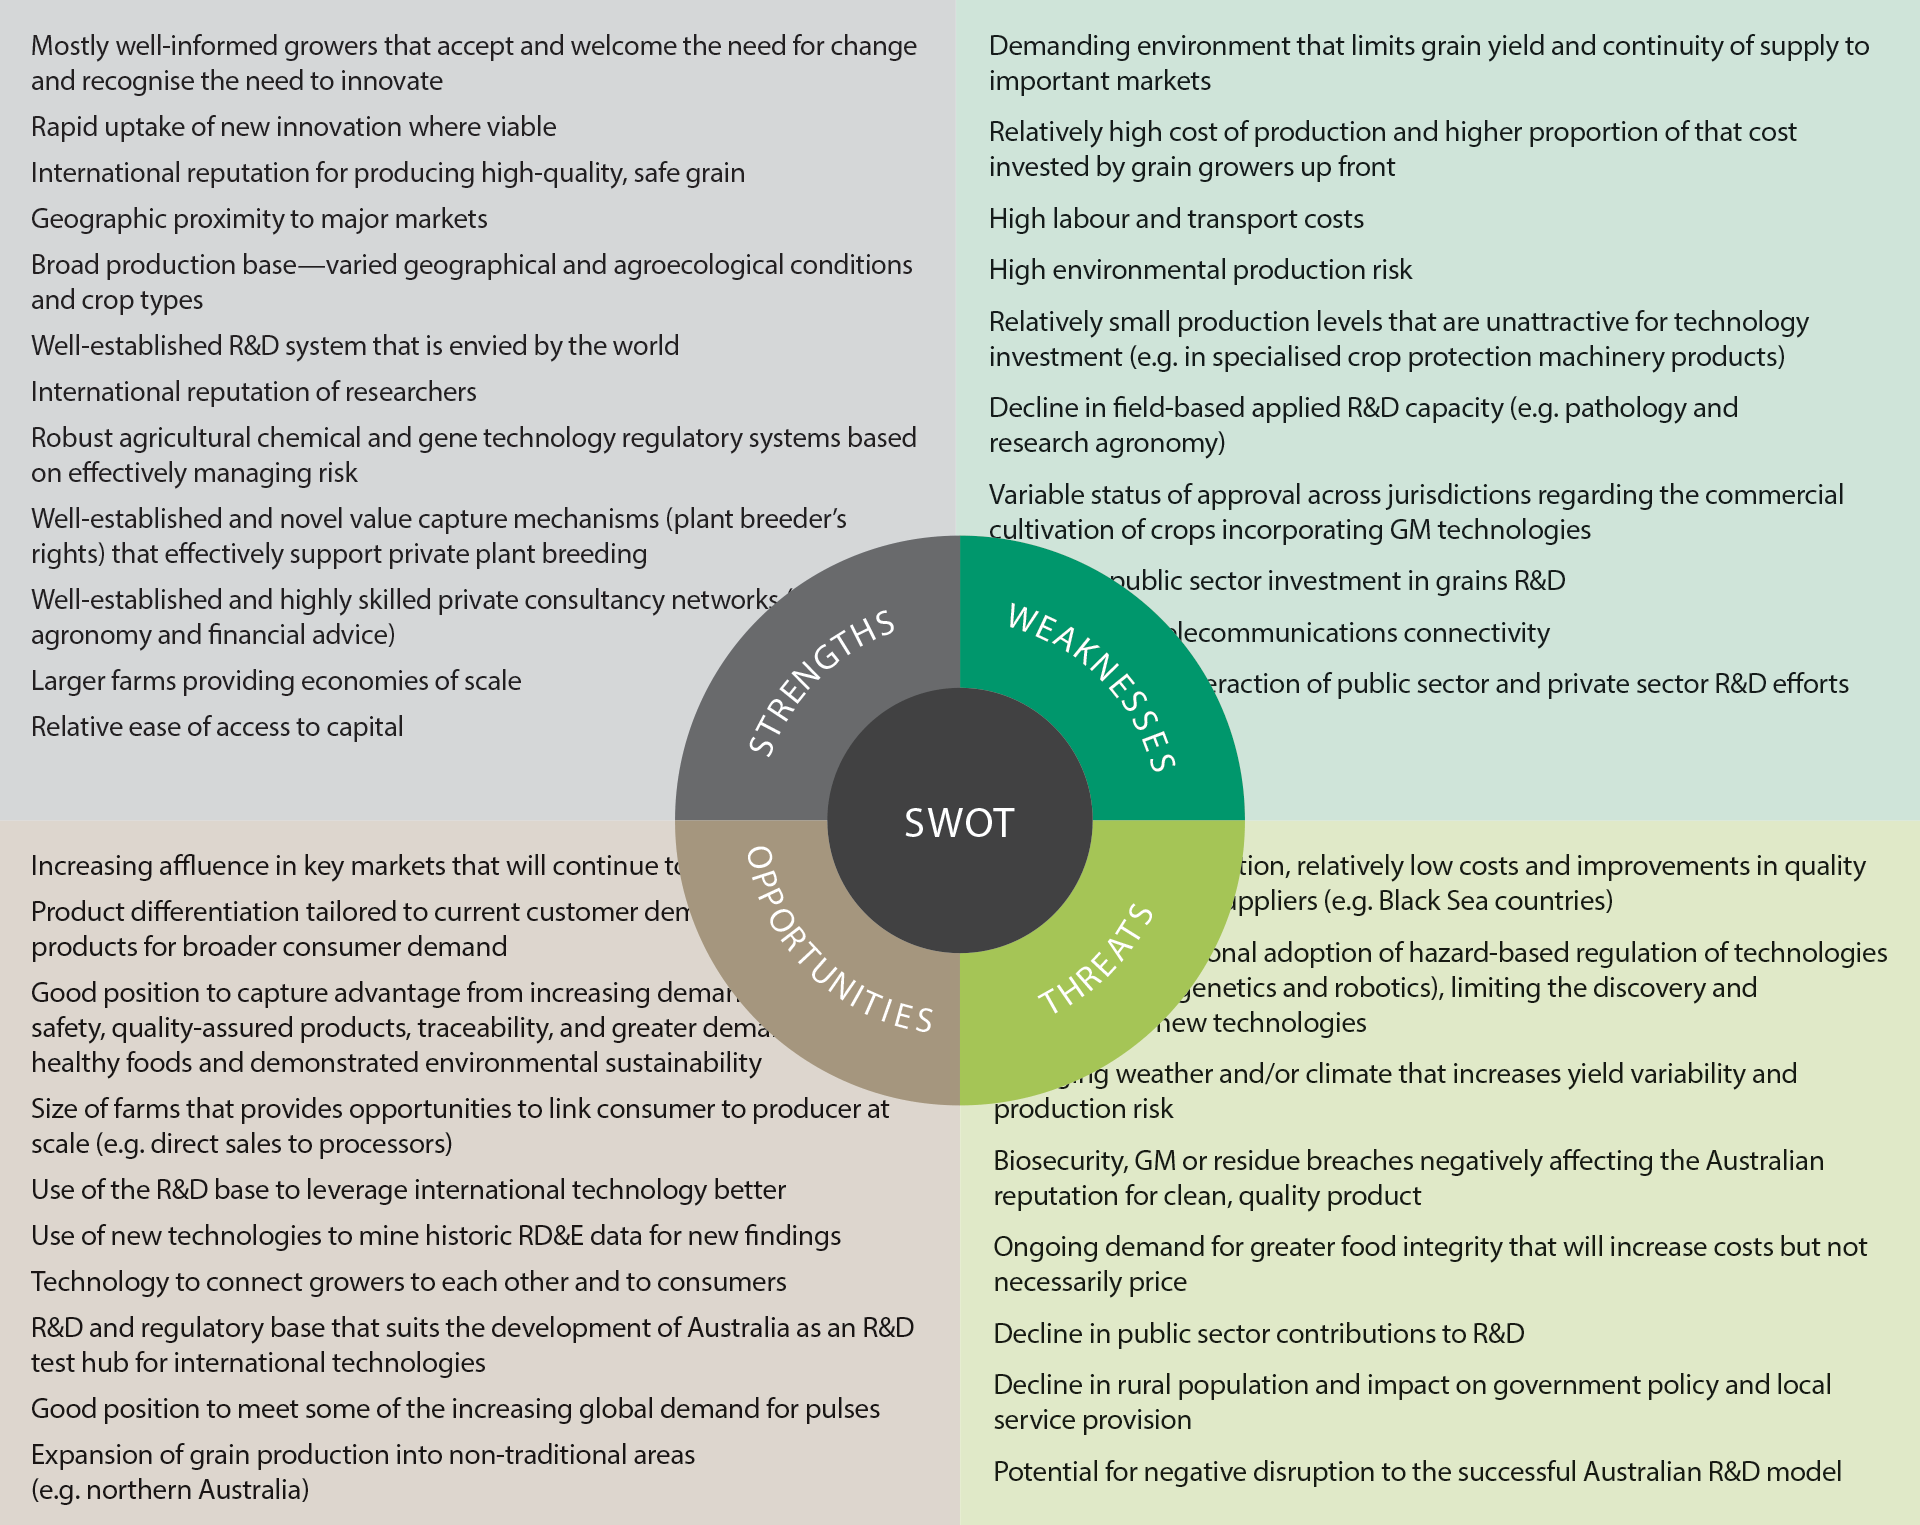 Grains industry SWOT analysis